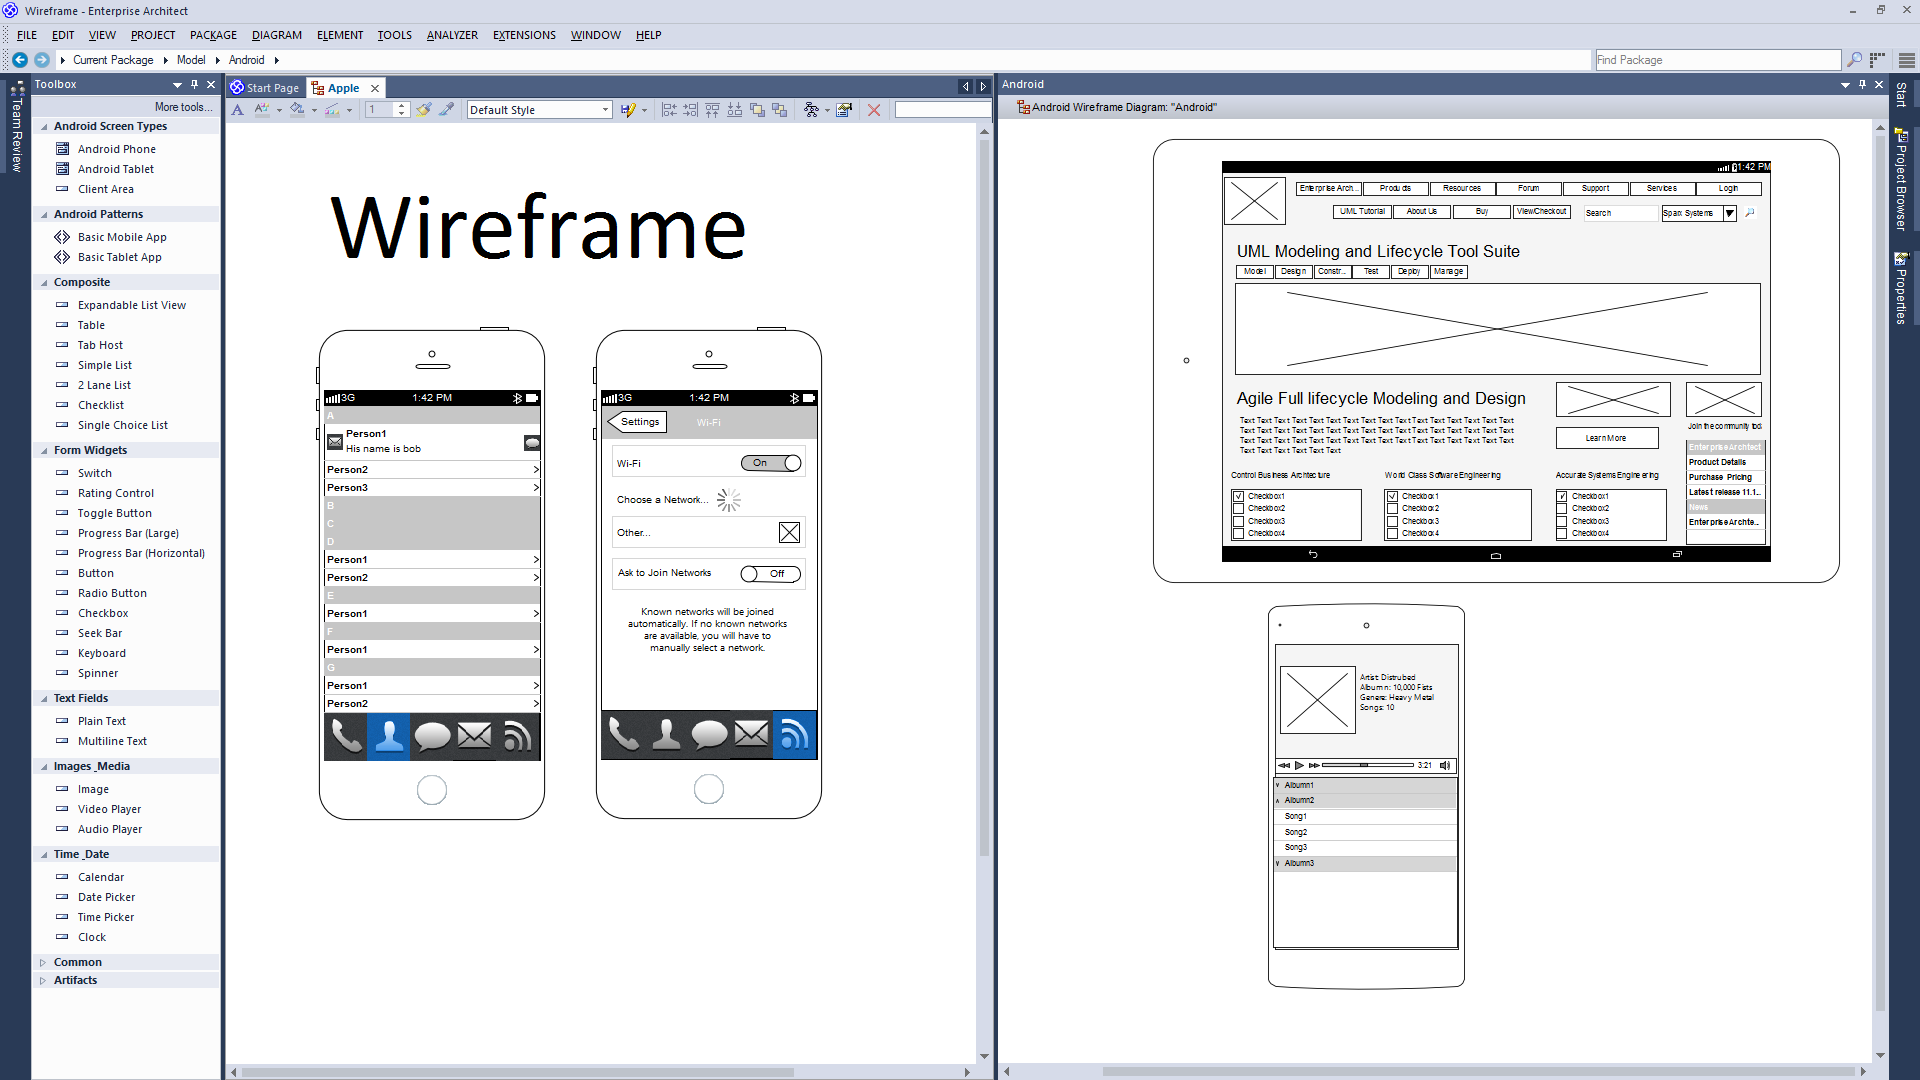 Support for Wireframes